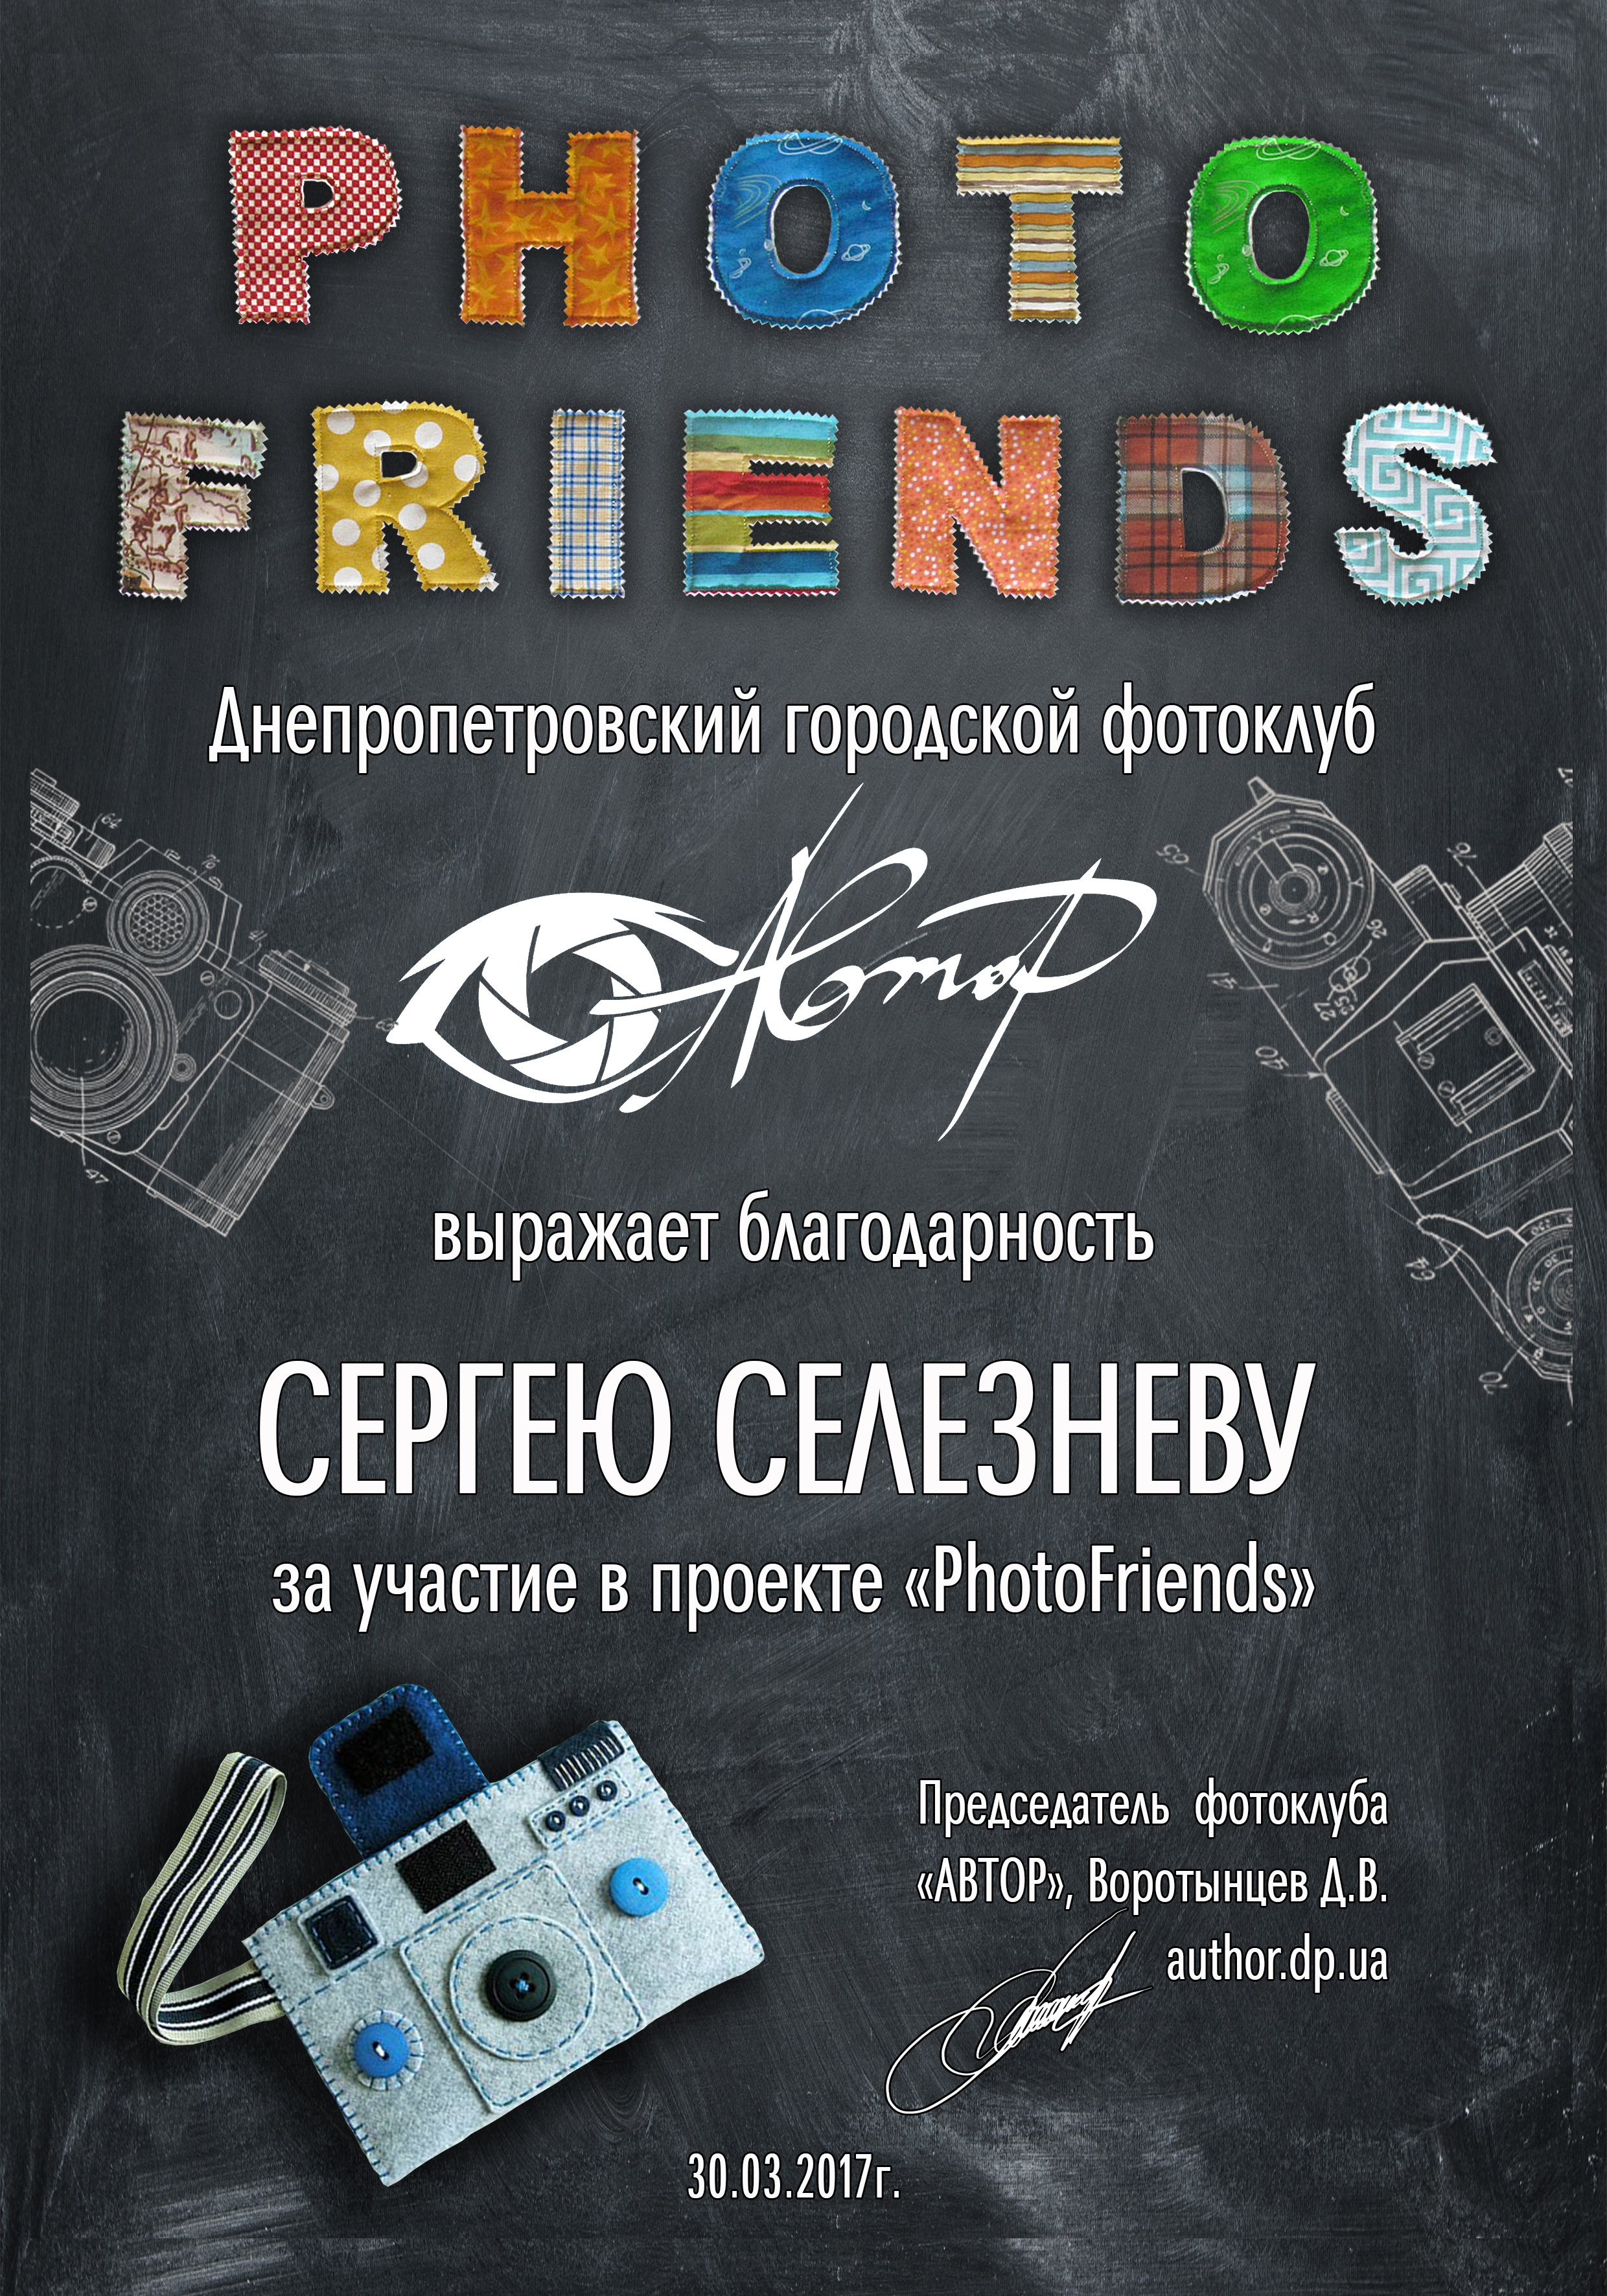 PHOTOFRIENDS- SELEZNEV